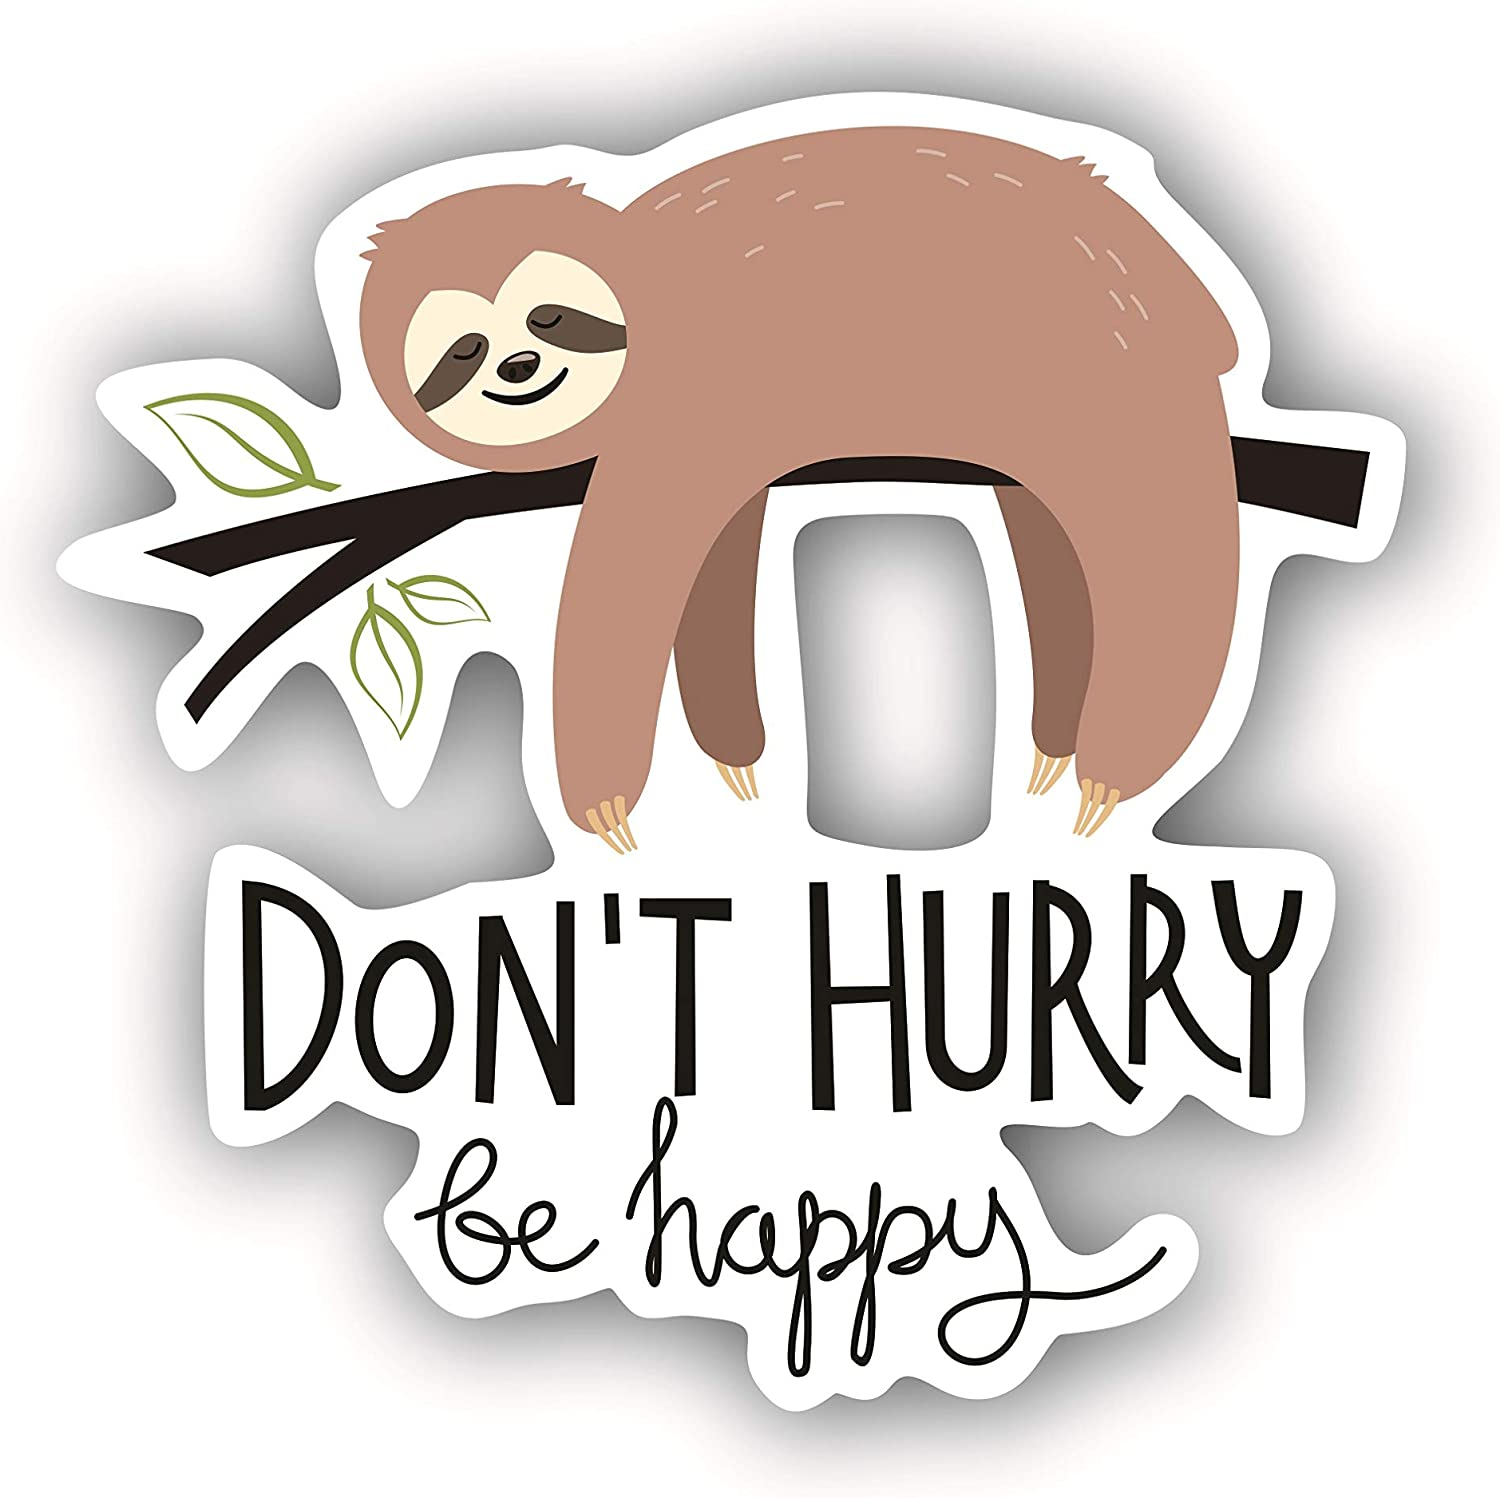 A&B Traders Funny Sloth Stickers - Don't Hurry Be Happy Car Decals Perfect for MacBook Stickers 4 Inch Funny Bumper Stickers for Cars Cute Laptop Sticker.